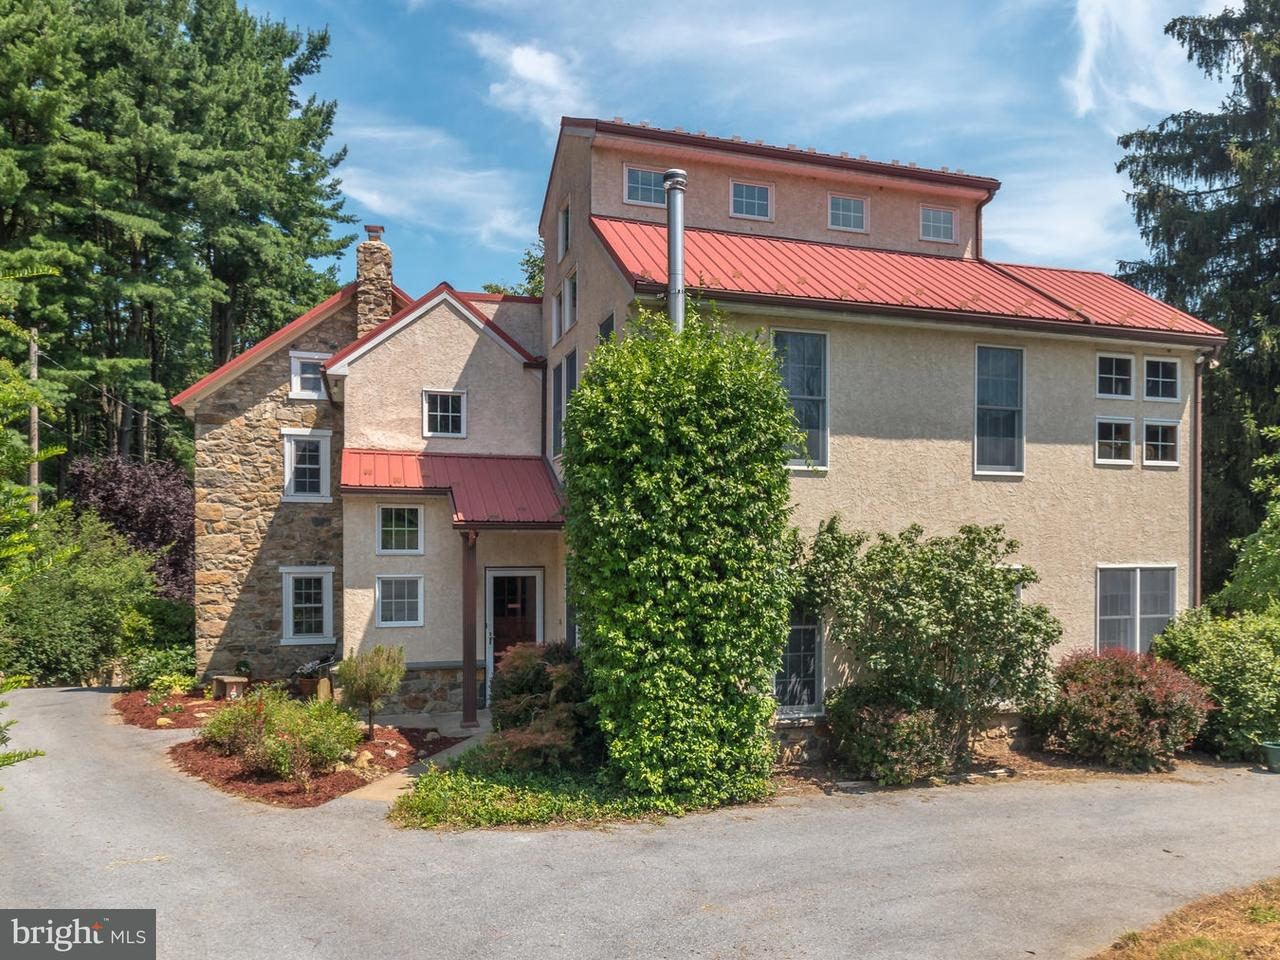 Single Family Home for Sale at 174 GROFF Road Bechtelsville, Pennsylvania 19505 United States